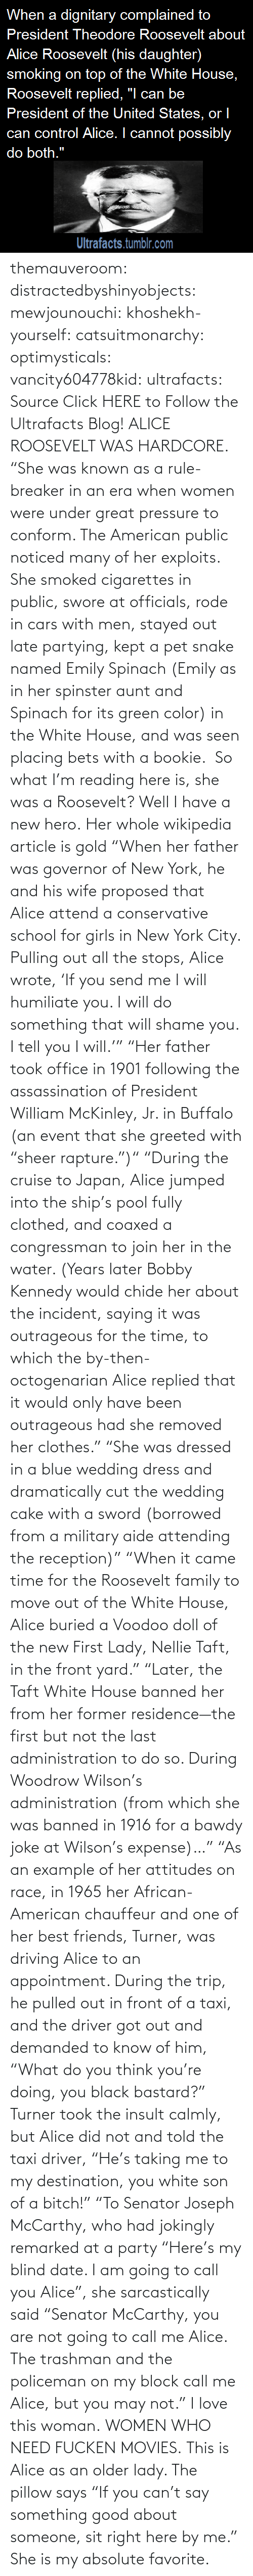 "Clothes: themauveroom: distractedbyshinyobjects:  mewjounouchi:  khoshekh-yourself:  catsuitmonarchy:  optimysticals:  vancity604778kid:  ultrafacts:     Source Click HERE to Follow the Ultrafacts Blog!     ALICE ROOSEVELT WAS HARDCORE. ""She was known as a rule-breaker in an era when women were under great pressure to conform. The American public noticed many of her exploits. She smoked cigarettes in public, swore at officials, rode in cars with men, stayed out late partying, kept a pet snake named Emily Spinach (Emily as in her spinster aunt and Spinach for its green color) in the White House, and was seen placing bets with a bookie.    So what I'm reading here is, she was a Roosevelt?  Well I have a new hero.  Her whole wikipedia article is gold ""When her father was governor of New York, he and his wife proposed that Alice attend a conservative school for girls in New York City. Pulling out all the stops, Alice wrote, 'If you send me I will humiliate you. I will do something that will shame you. I tell you I will.'"" ""Her father took office in 1901 following the assassination of President William McKinley, Jr. in Buffalo (an event that she greeted with ""sheer rapture."")"" ""During the cruise to Japan, Alice jumped into the ship's pool fully clothed, and coaxed a congressman to join her in the water. (Years later Bobby Kennedy would chide her about the incident, saying it was outrageous for the time, to which the by-then-octogenarian Alice replied that it would only have been outrageous had she removed her clothes."" ""She was dressed in a blue wedding dress and dramatically cut the wedding cake with a sword (borrowed from a military aide attending the reception)"" ""When it came time for the Roosevelt family to move out of the White House, Alice buried a Voodoo doll of the new First Lady, Nellie Taft, in the front yard."" ""Later, the Taft White House banned her from her former residence—the first but not the last administration to do so. During Woodrow Wilson's administration (from which she was banned in 1916 for a bawdy joke at Wilson's expense)…"" ""As an example of her attitudes on race, in 1965 her African-American chauffeur and one of her best friends, Turner, was driving Alice to an appointment. During the trip, he pulled out in front of a taxi, and the driver got out and demanded to know of him, ""What do you think you're doing, you black bastard?"" Turner took the insult calmly, but Alice did not and told the taxi driver, ""He's taking me to my destination, you white son of a bitch!"" ""To Senator Joseph McCarthy, who had jokingly remarked at a party ""Here's my blind date. I am going to call you Alice"", she sarcastically said ""Senator McCarthy, you are not going to call me Alice. The trashman and the policeman on my block call me Alice, but you may not.""  I love this woman.  WOMEN WHO NEED FUCKEN MOVIES.   This is Alice as an older lady. The pillow says ""If you can't say something good about someone, sit right here by me.""  She is my absolute favorite."